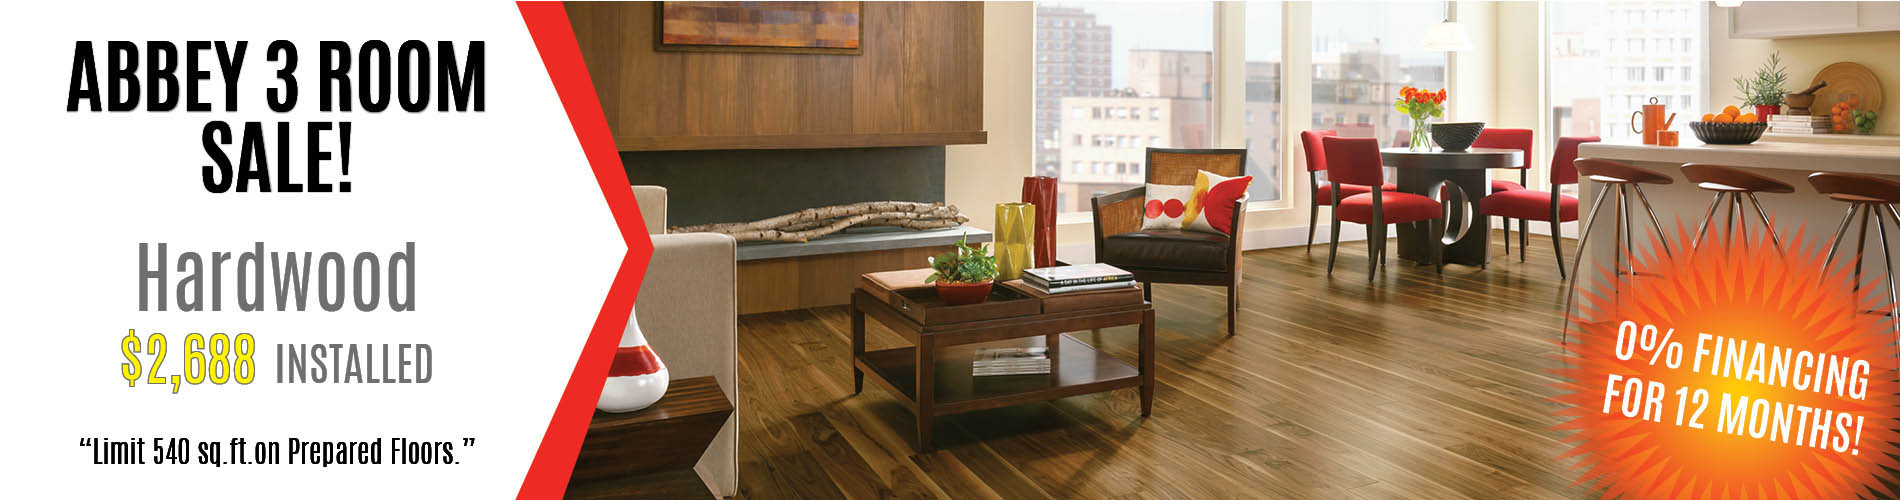 3 rooms of hardwood flooring just $2688 installed at Ted's Abbey Carpet & Floor!* 0% Financing available!